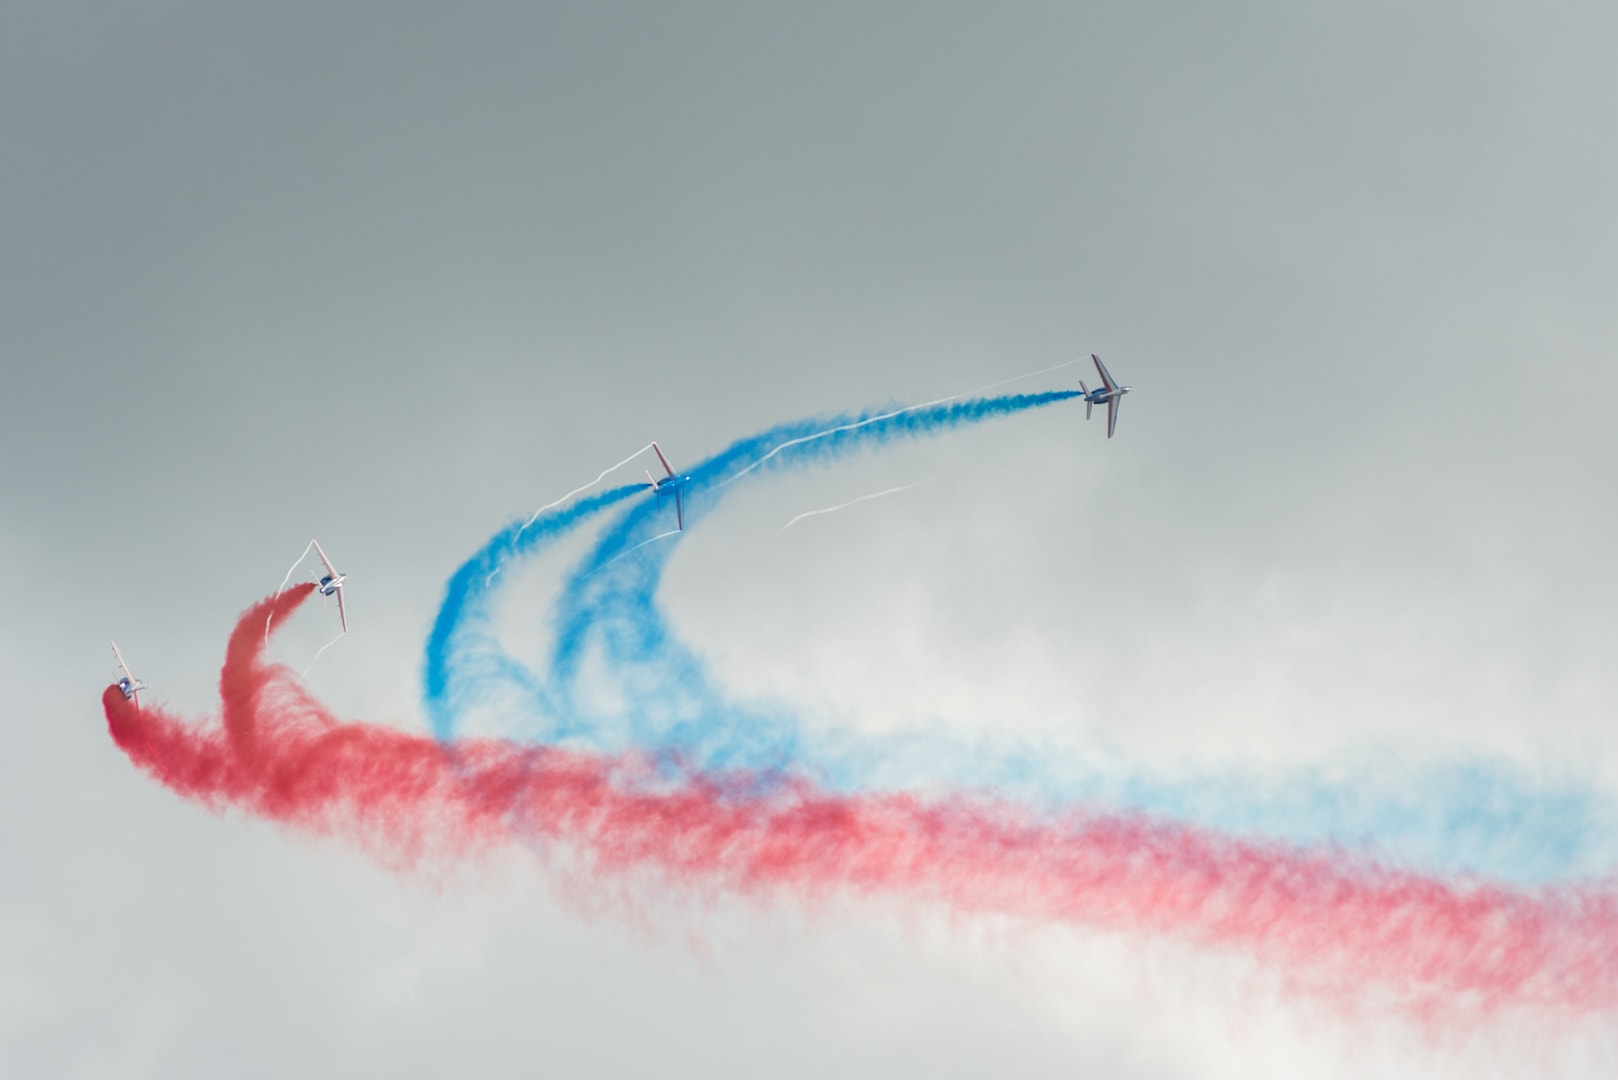 Photo de la patrouille de france n°15